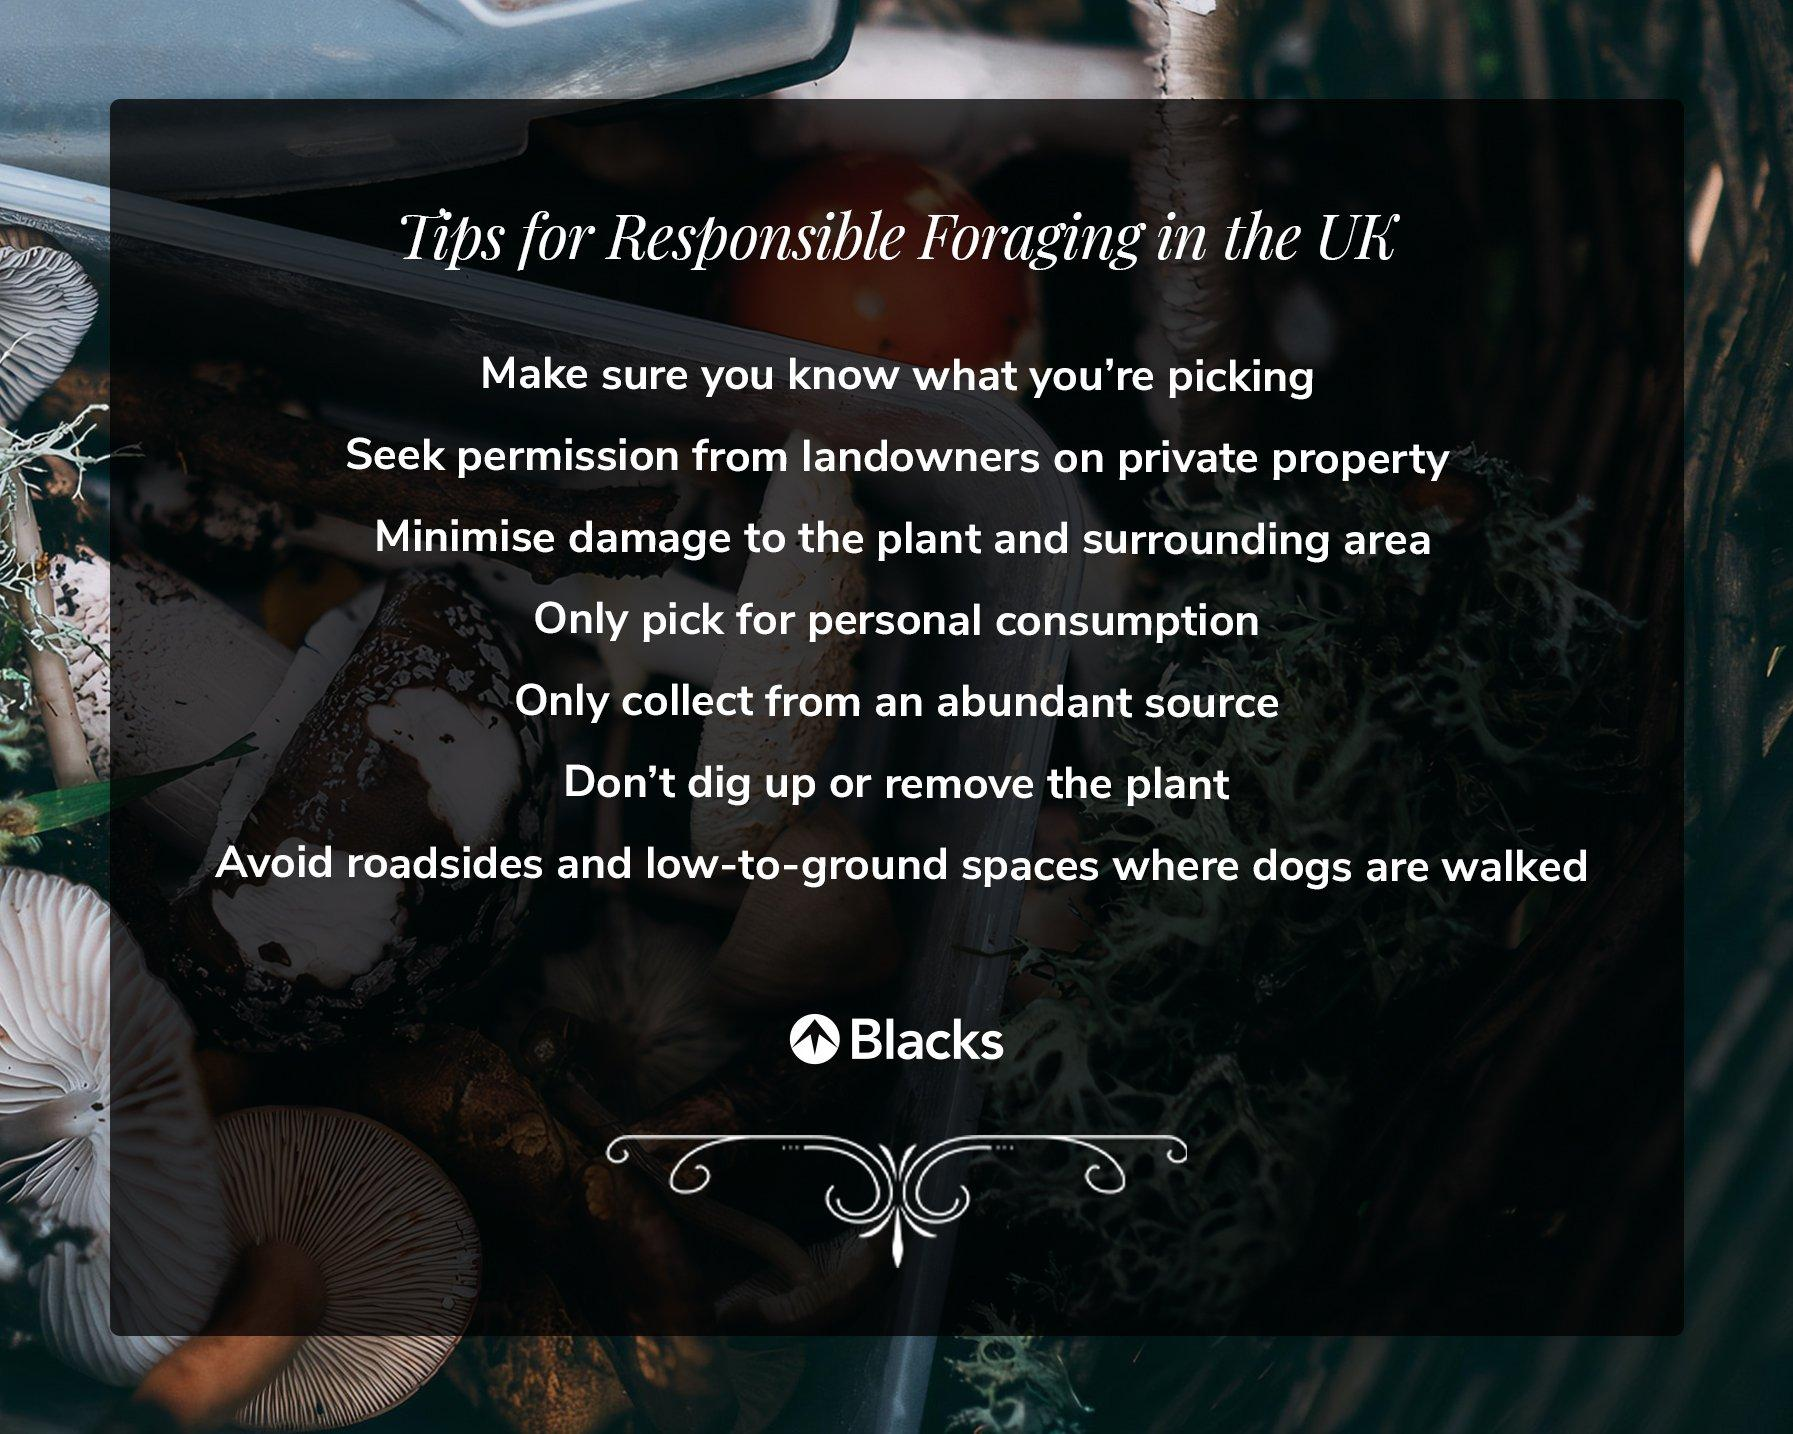 an infographic that details how to forage in the UK responsibly